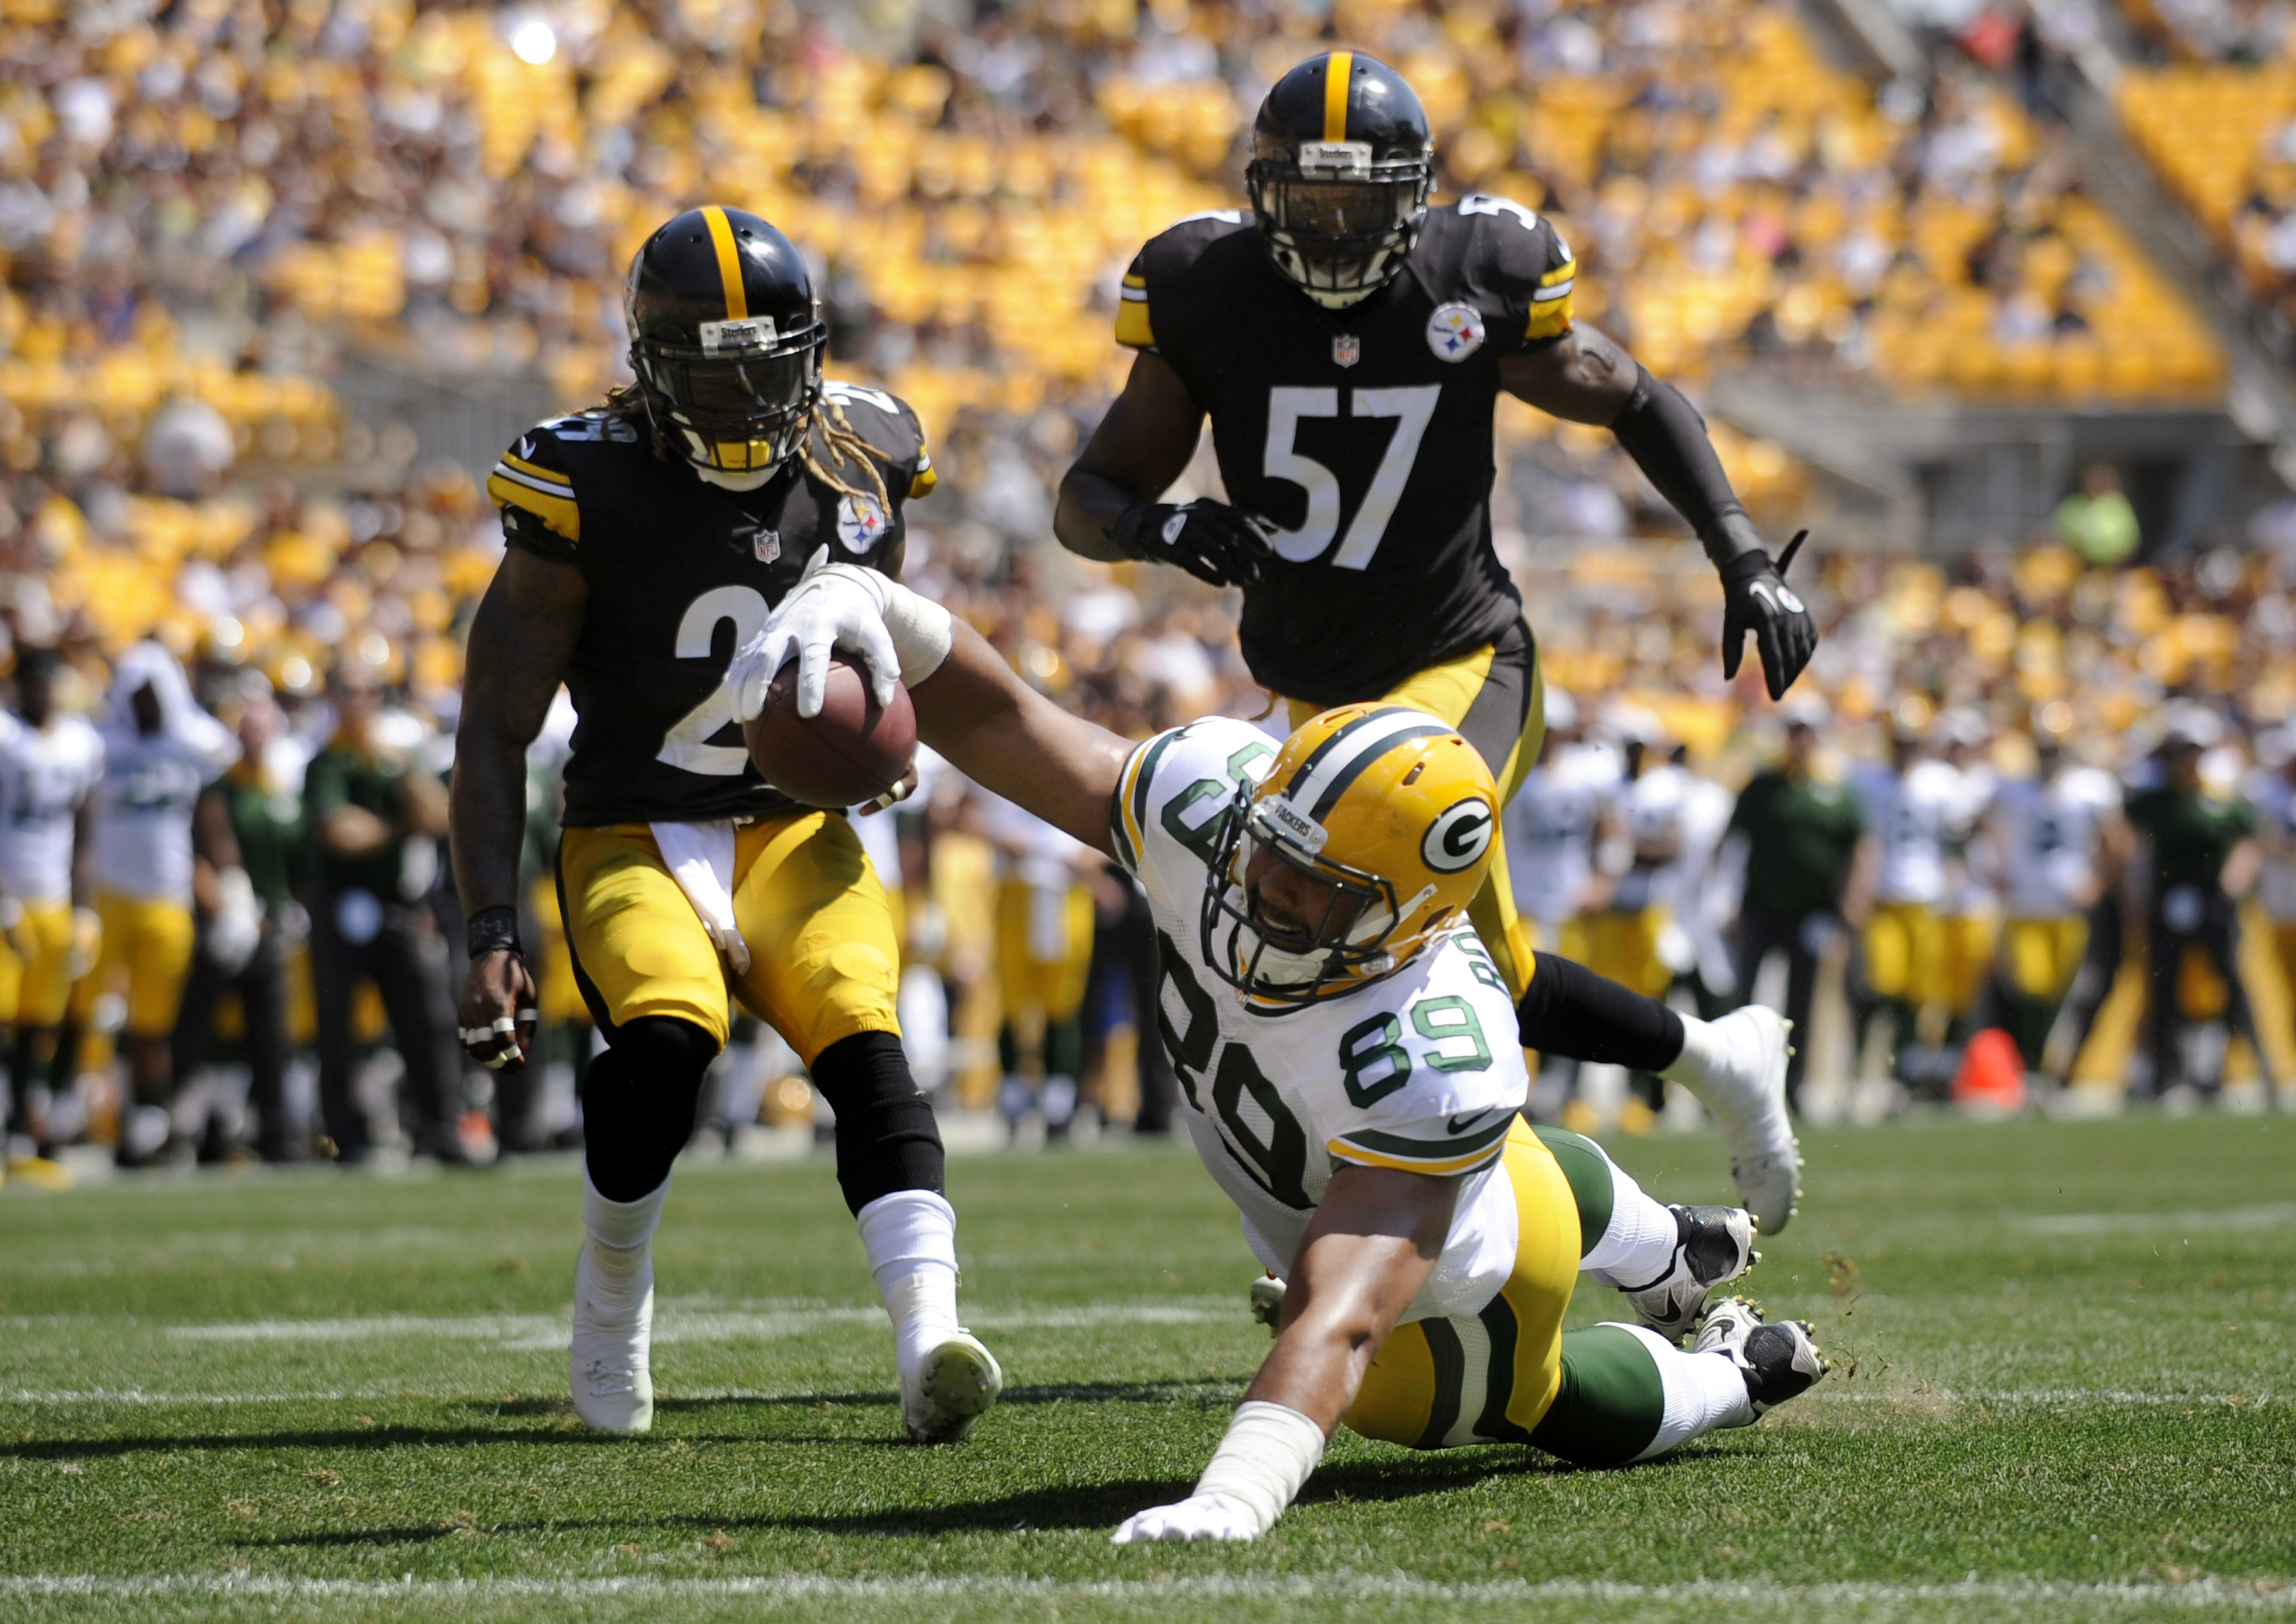 Green Bay Packers tight end Richard Rodgers (89) stretches for the end zone and a touchdown in front of Pittsburgh Steelers inside linebacker Terence Garvin (57) and safety Sharmako Thoms, left, during the second quarter of an NFL preseason football game,